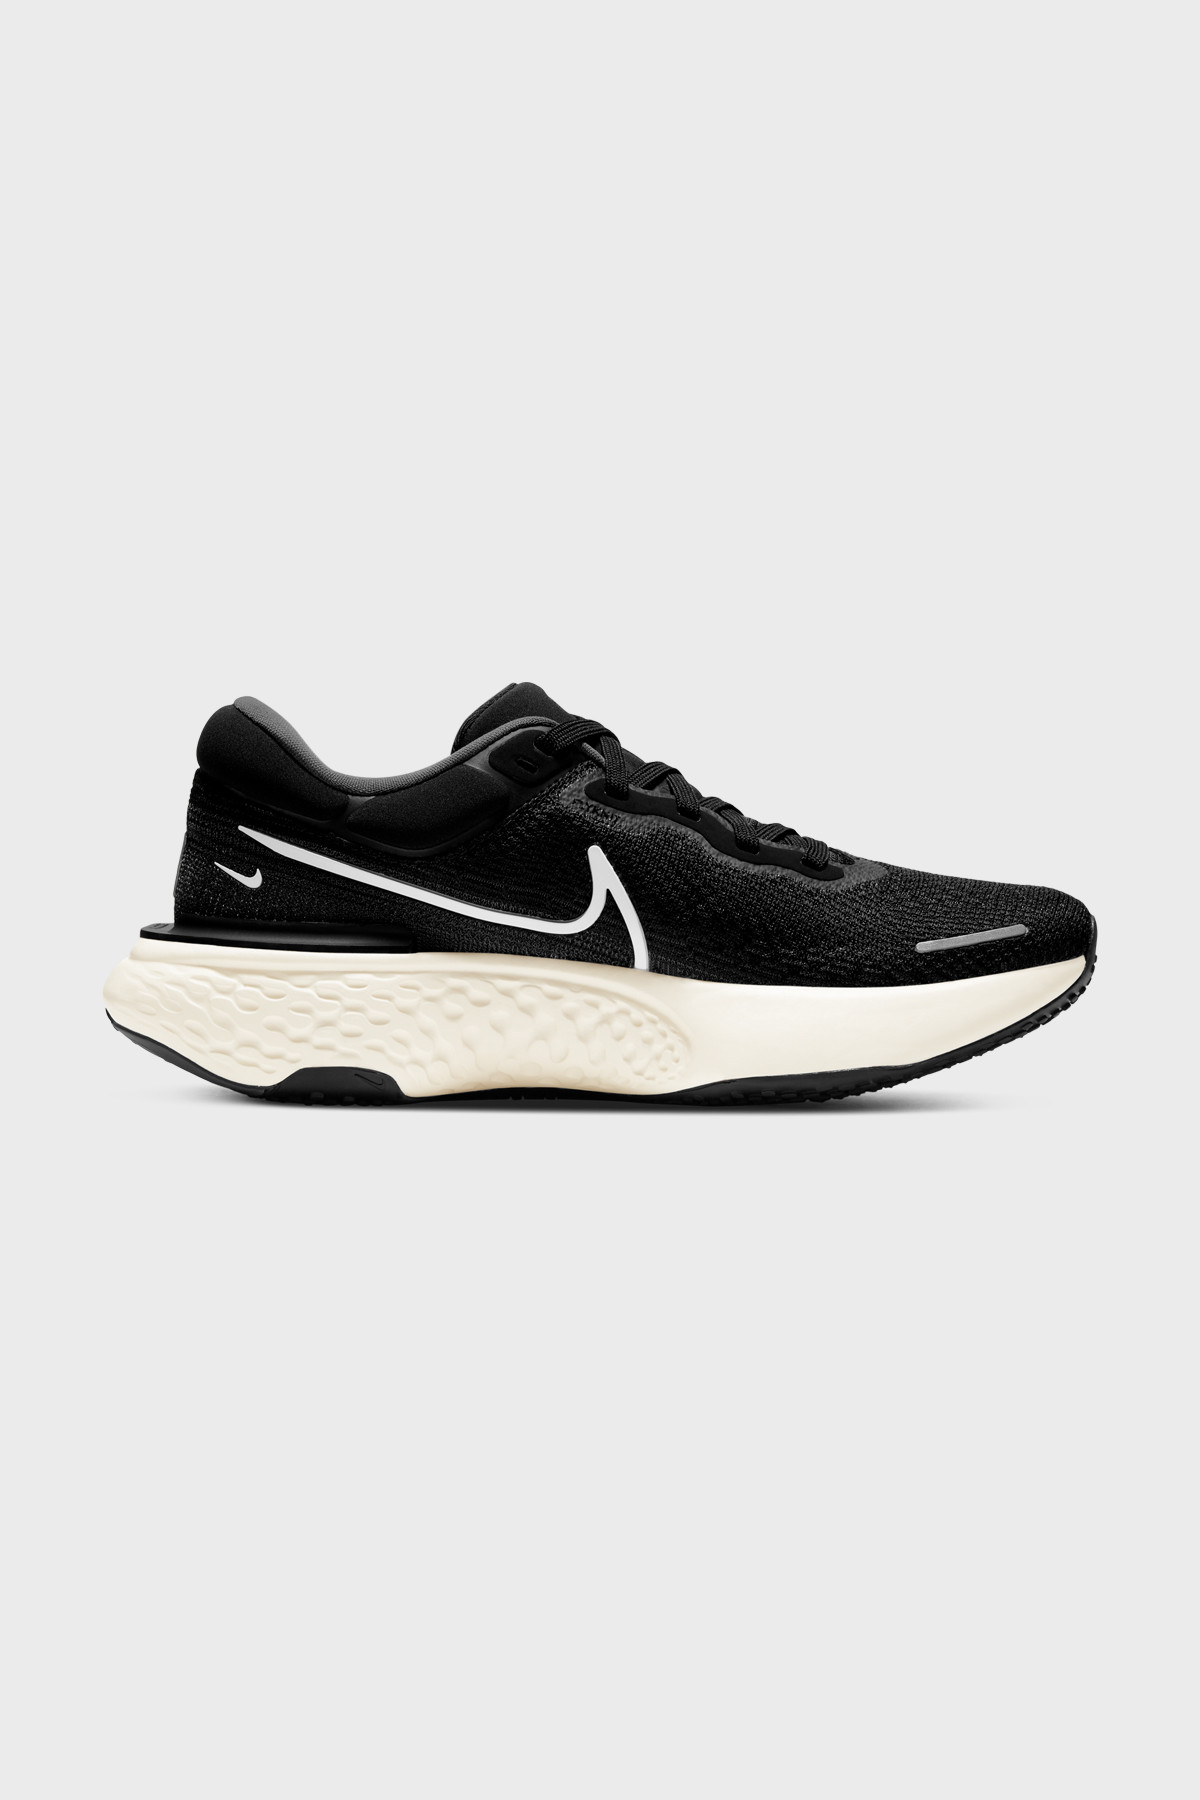 NIKE - Nike ZoomX Invincible Run Flyknit - BLACK WHITE